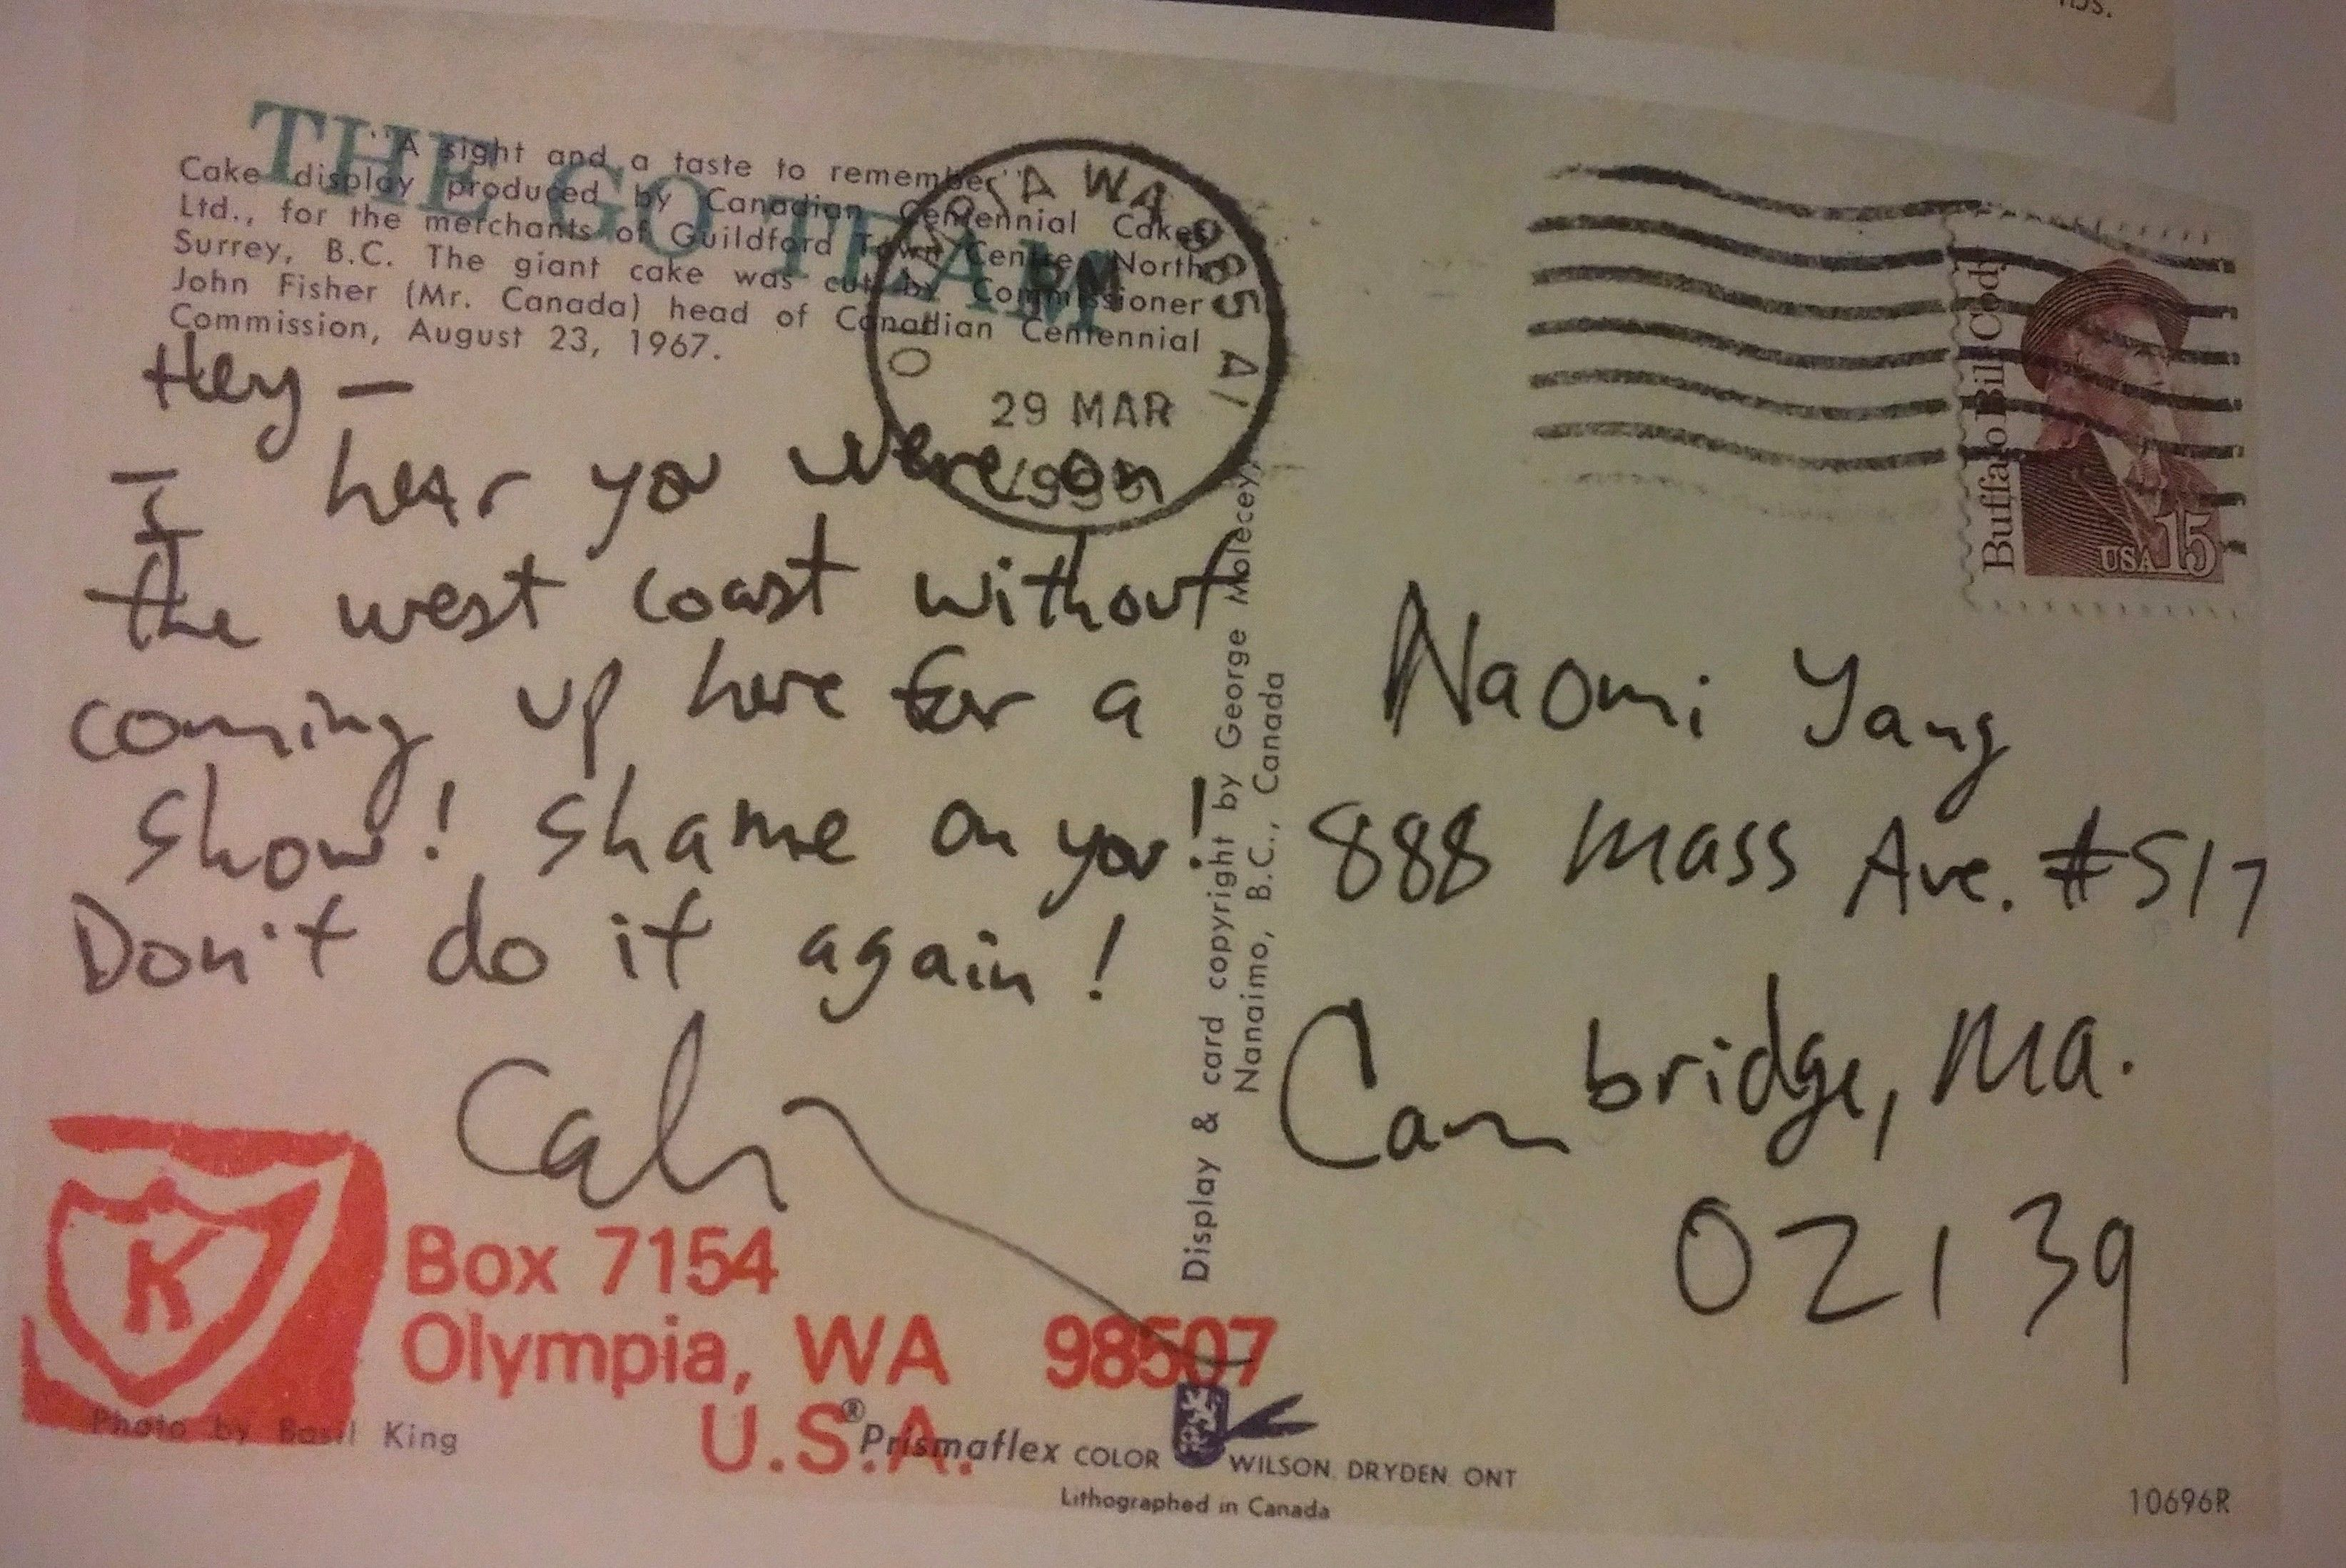 Calvin Johnson postcard to Galaxie 500 (from a few months later)